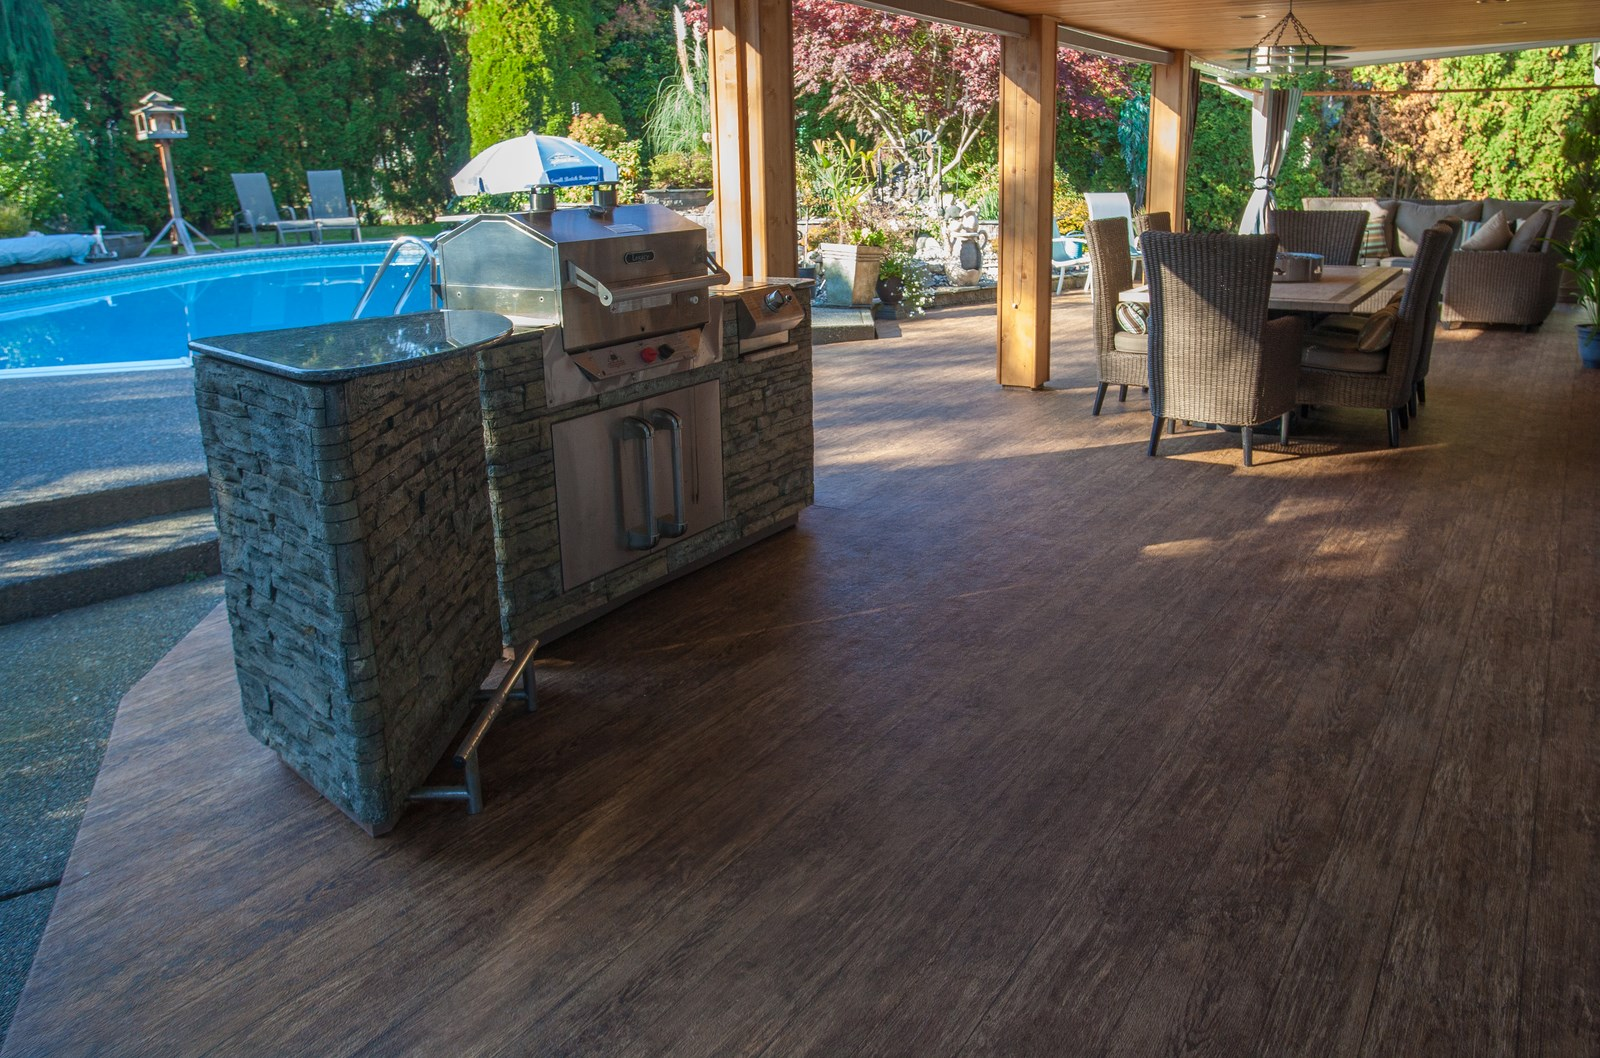 Tips For Outdoor Kitchens On Vinyl Deck Surfaces